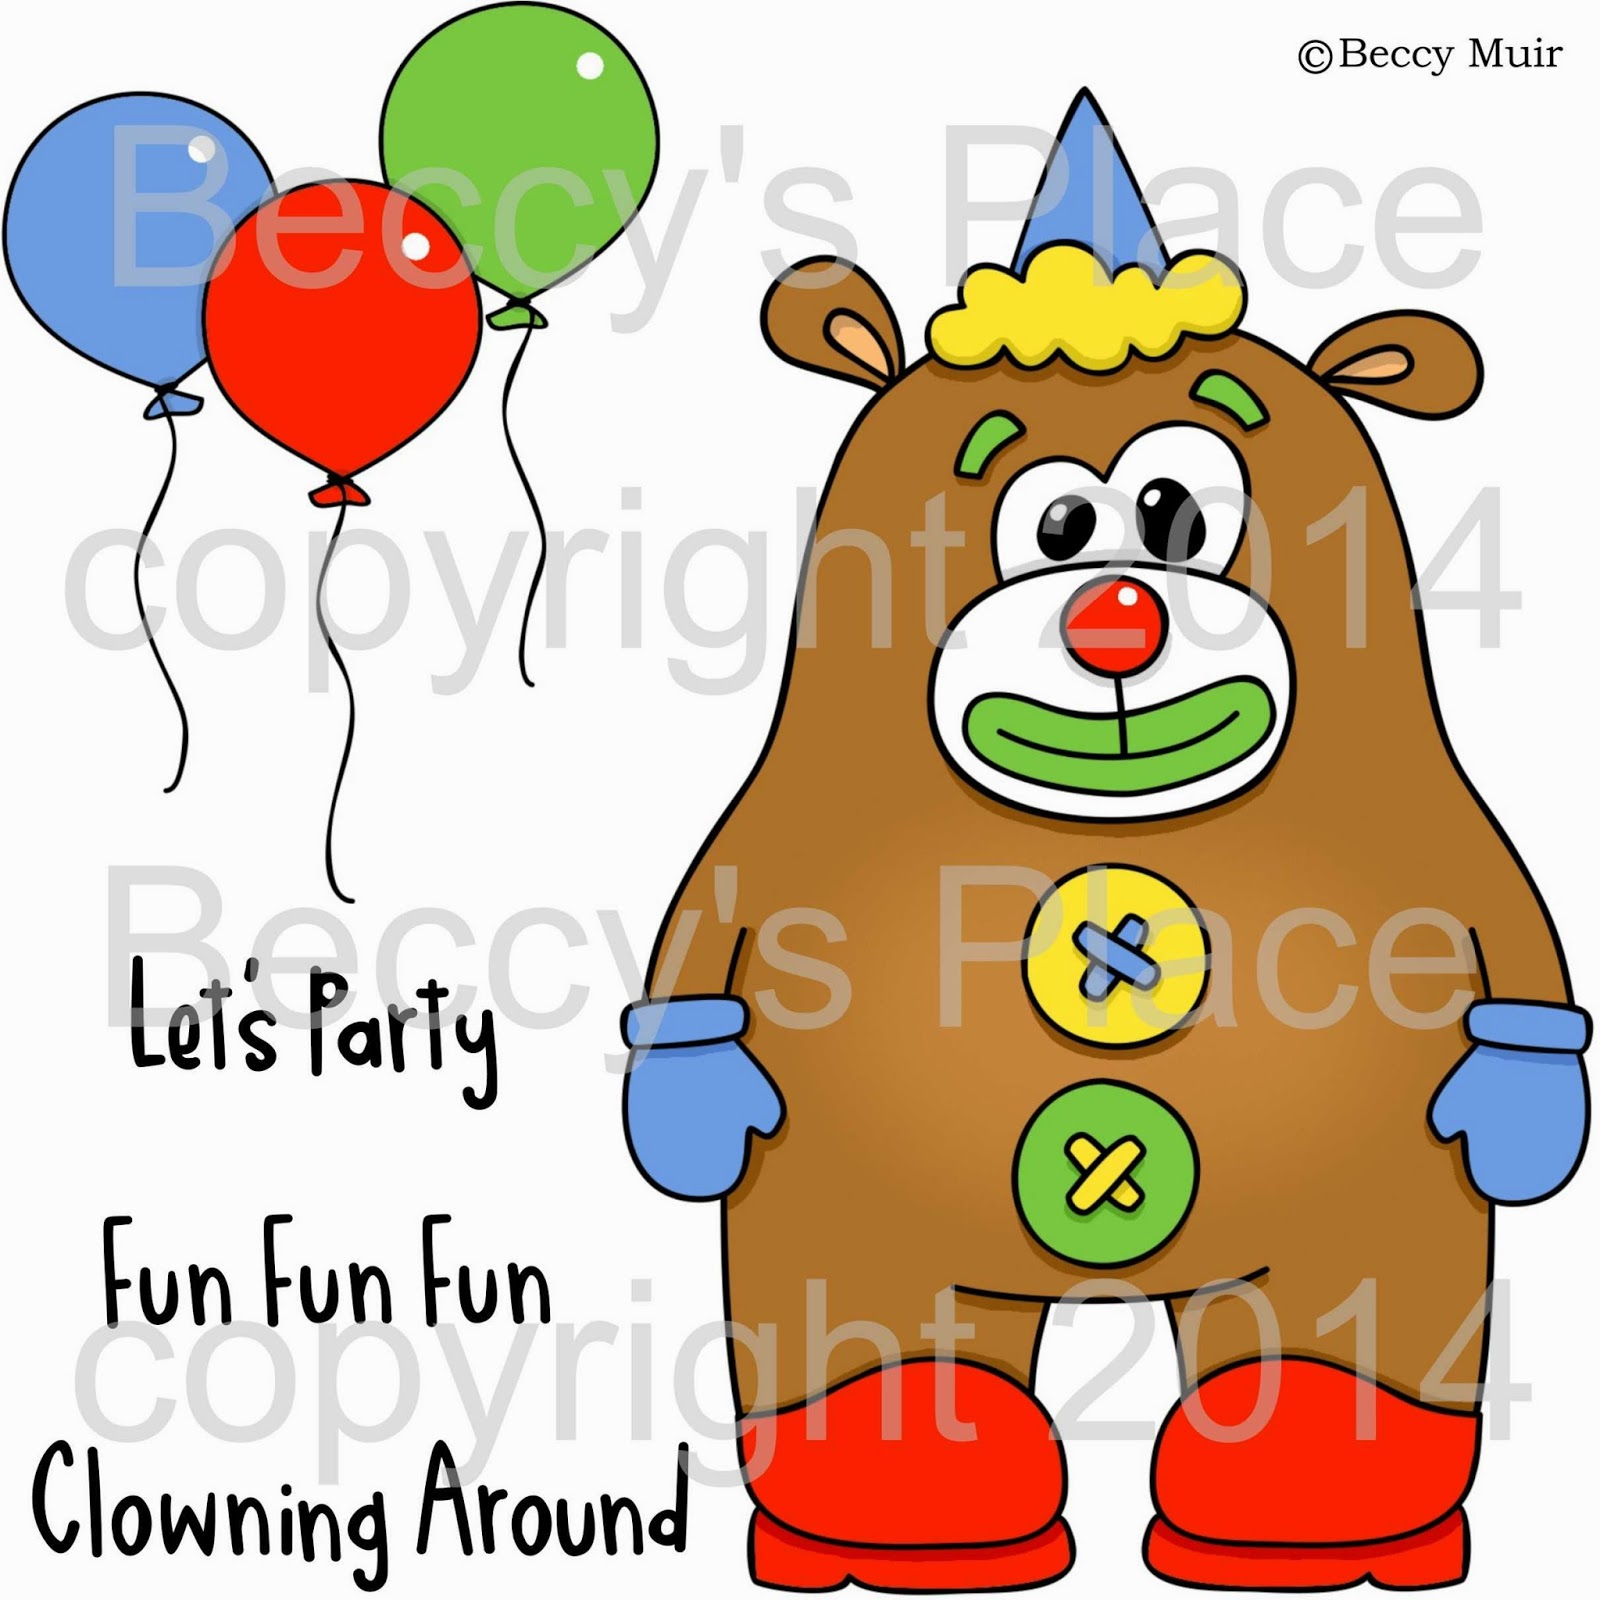 http://beccysplace.blogspot.com/2014/05/stanley-clown.html#comment-form